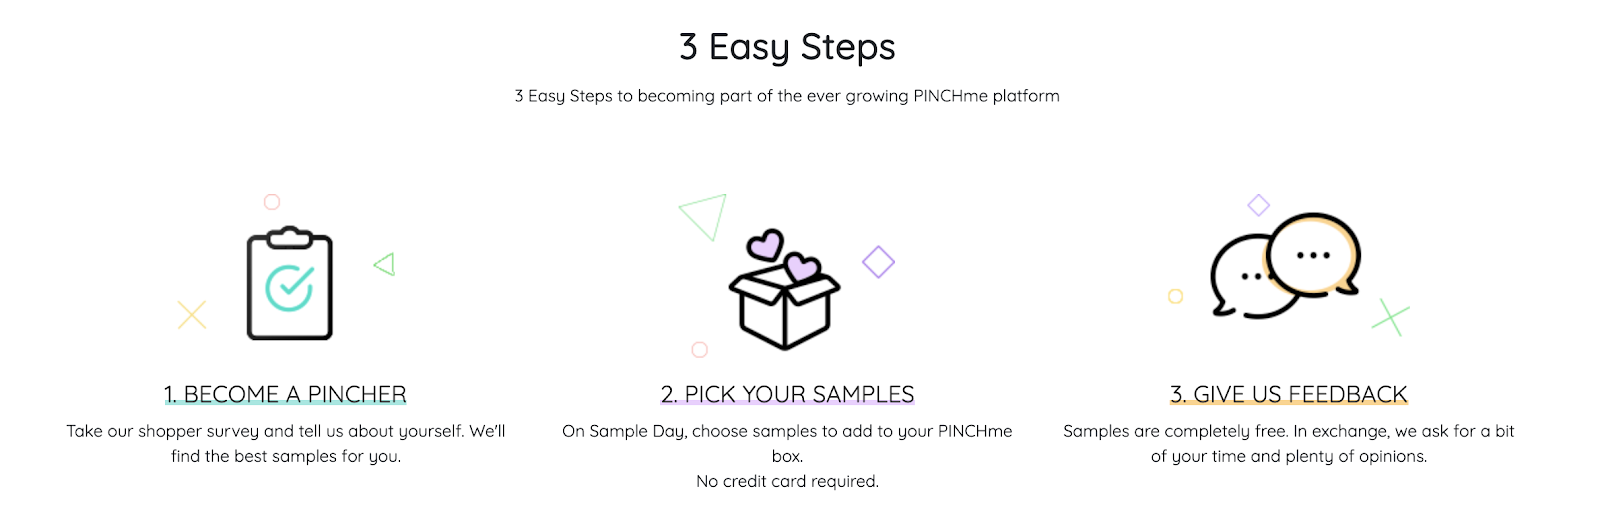 3 step guide to Free Stuff with PINCHme